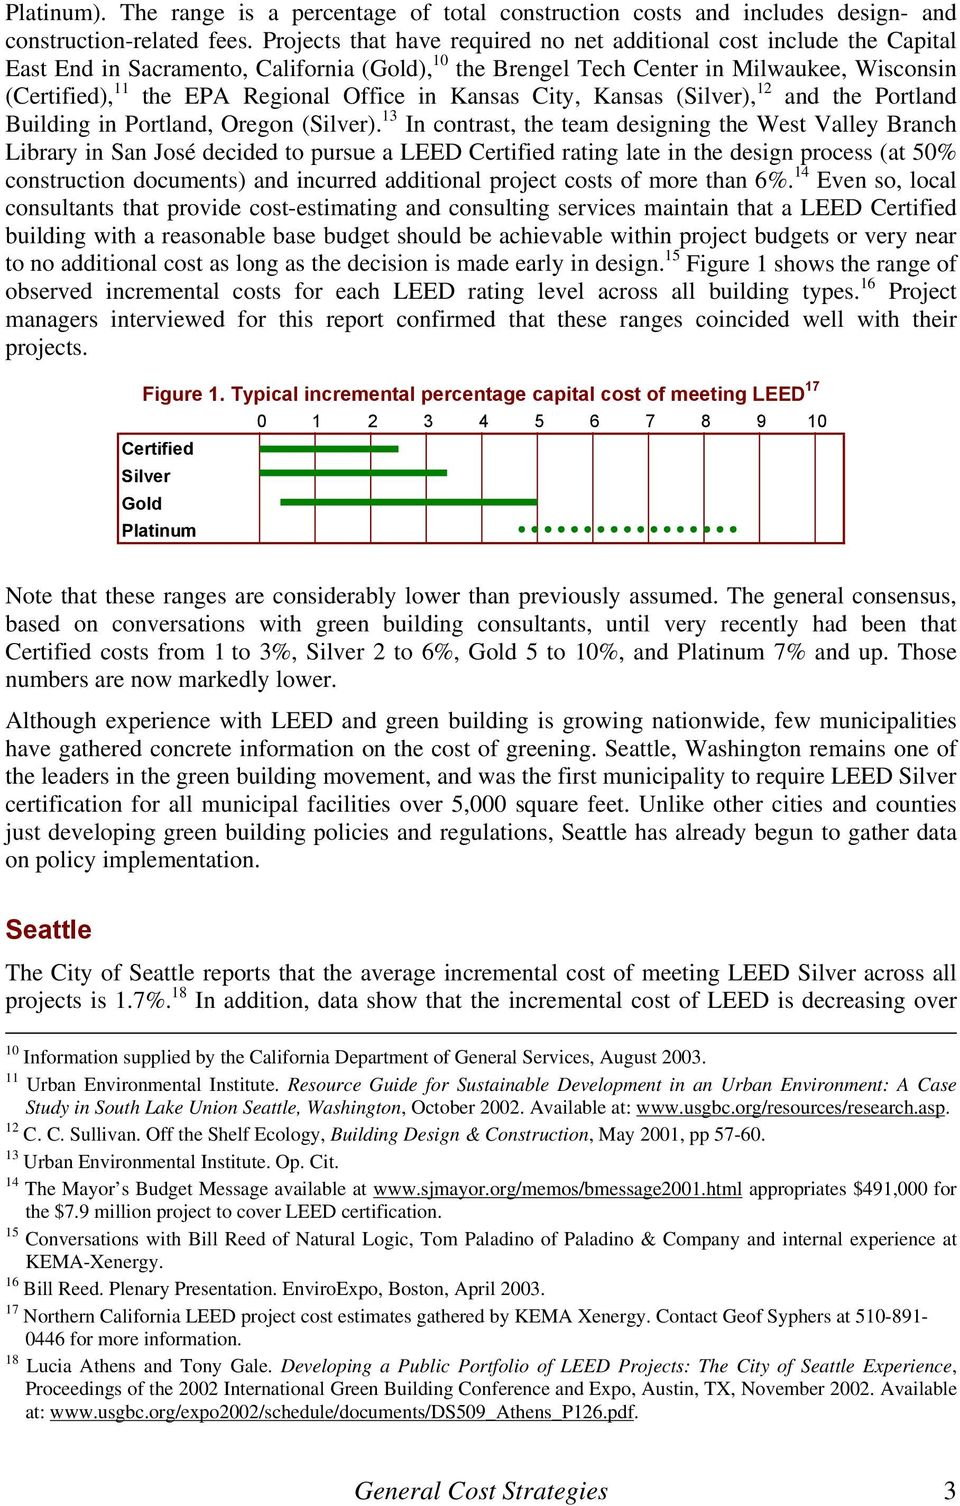 Managing The Cost Of Green Buildings Pdf